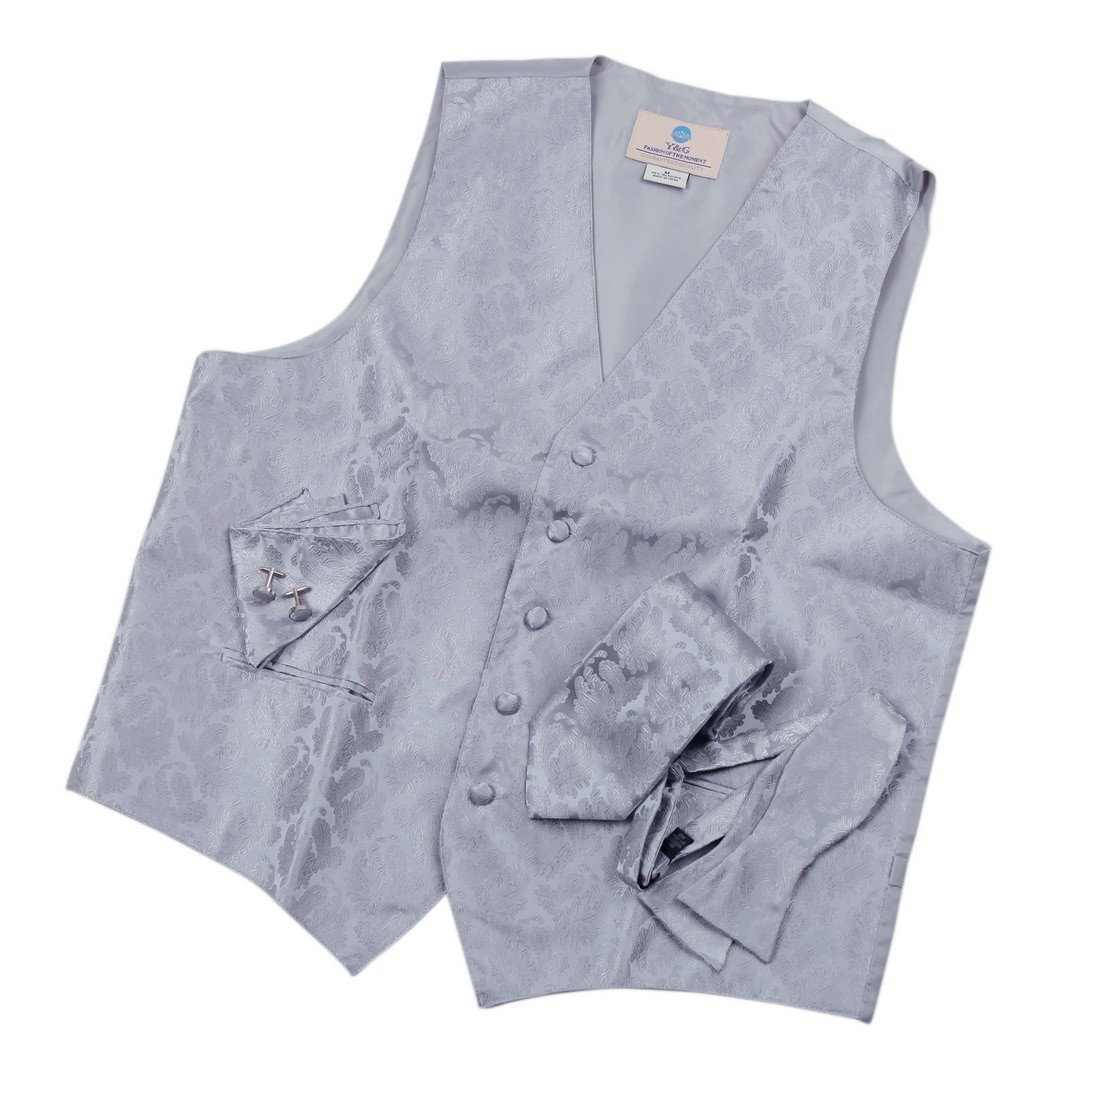 Silver Paisley Formal Vest for Men Grey Patterned for Mens Gift Idea with Neck Tie, Cufflinks, Handkerchief, Bow Tie for Suit Vs1006-M Medium Silver